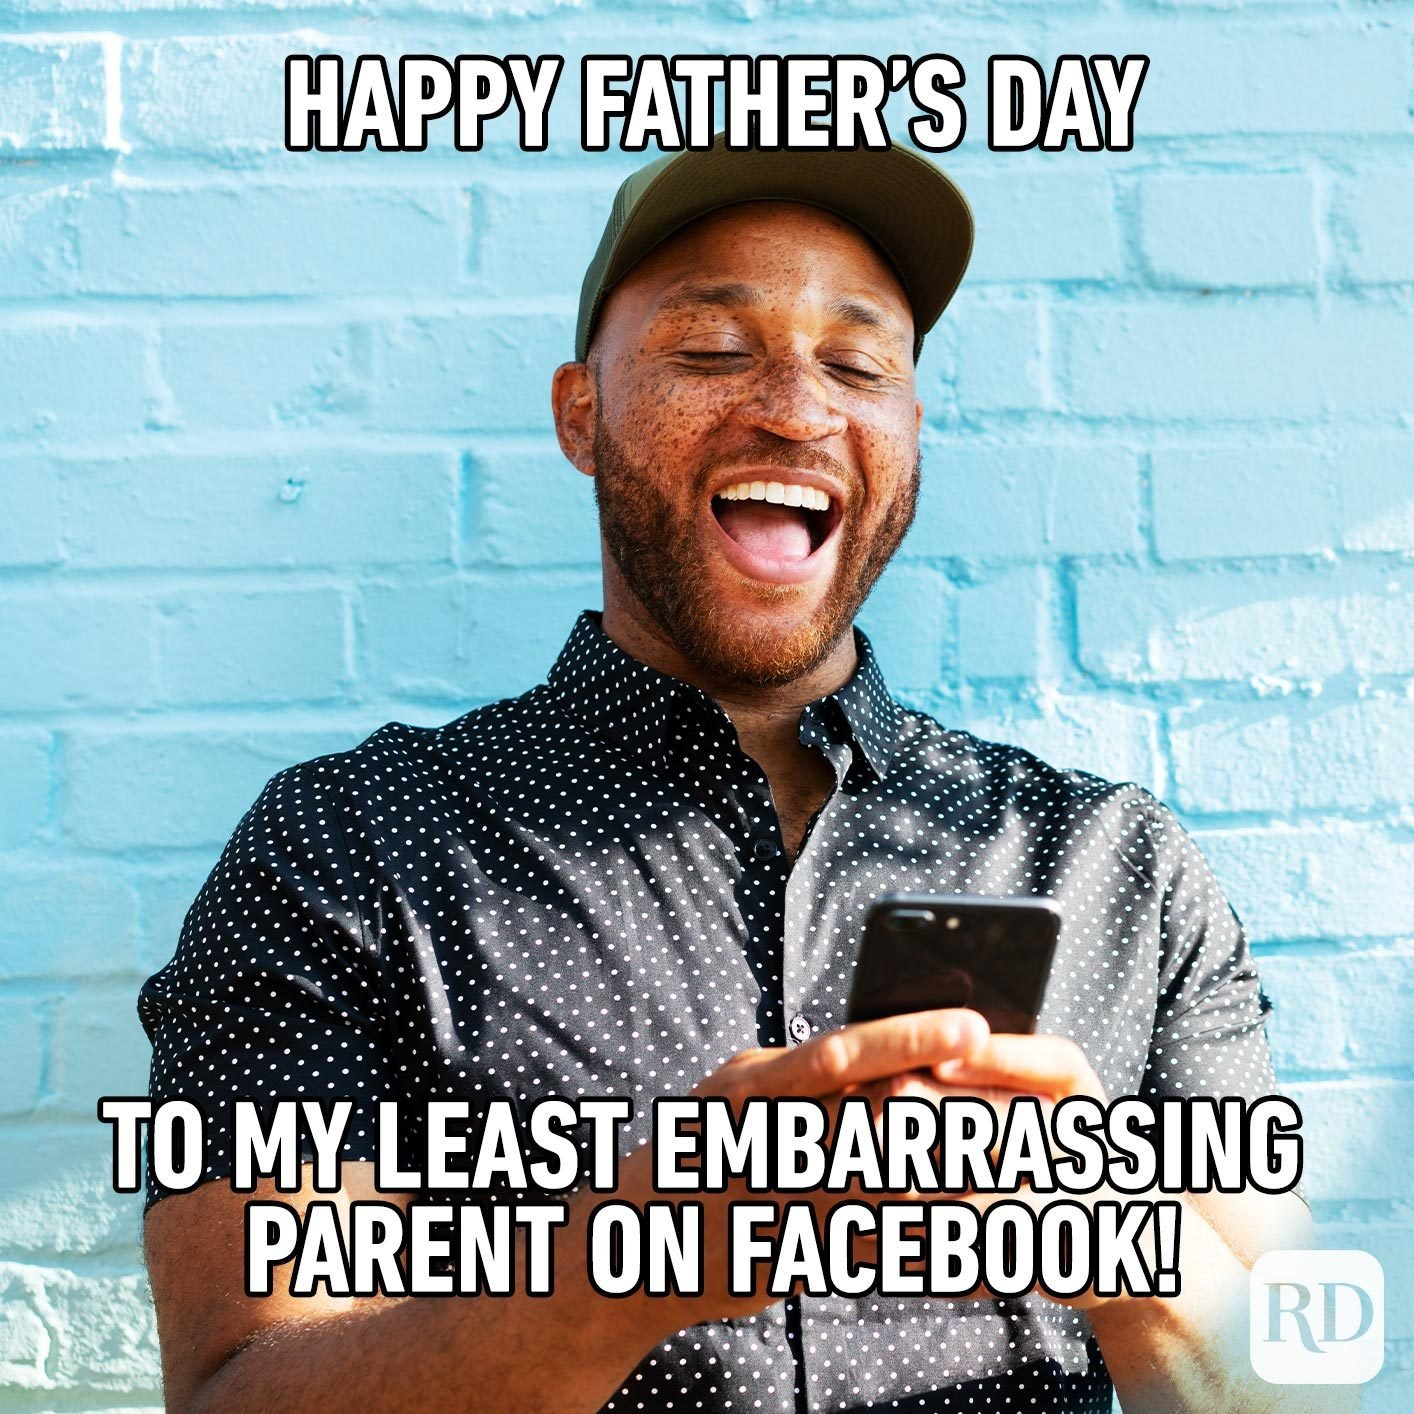 Man laughing at phone. Meme text: Happy Father's Day to my least embarrassing parent on Facebook!